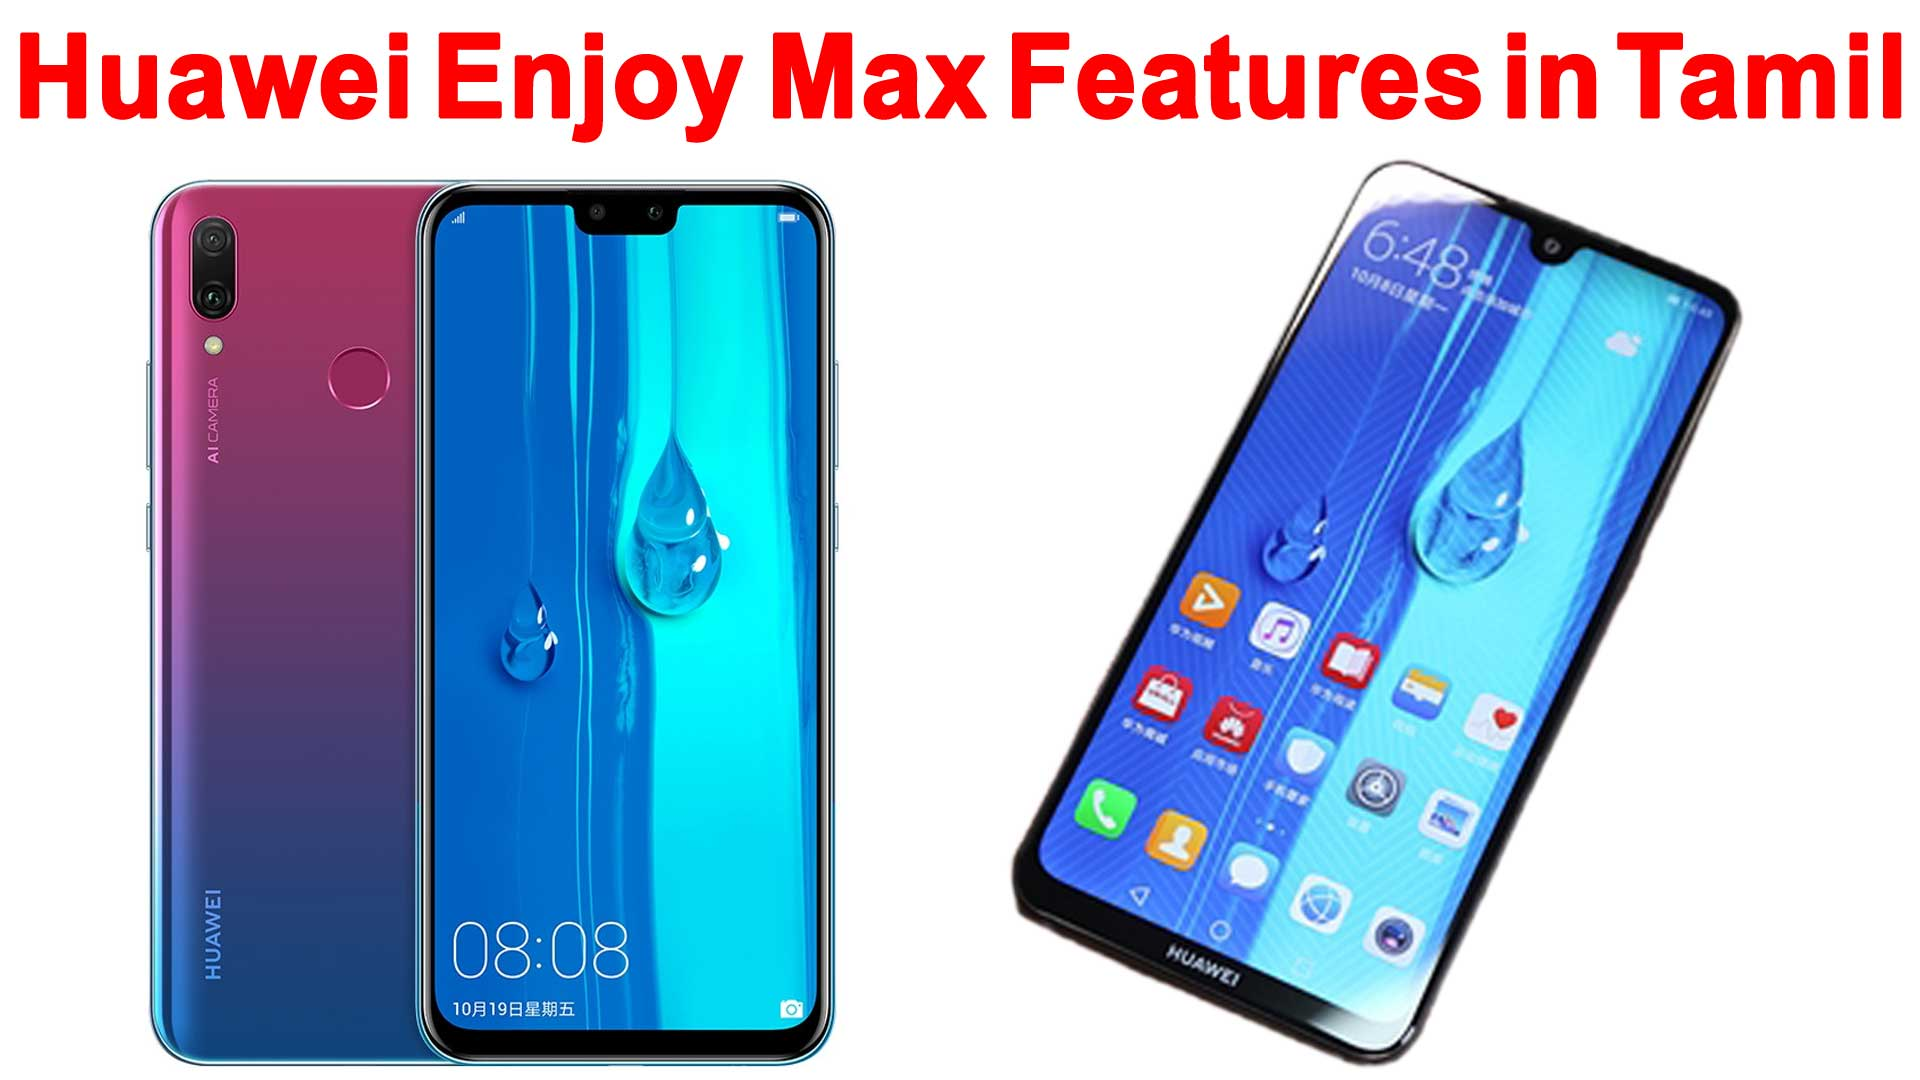 Huawei Enjoy Max - Price, Specifications & Features in Tamil | Huawei Enjoy Max Review